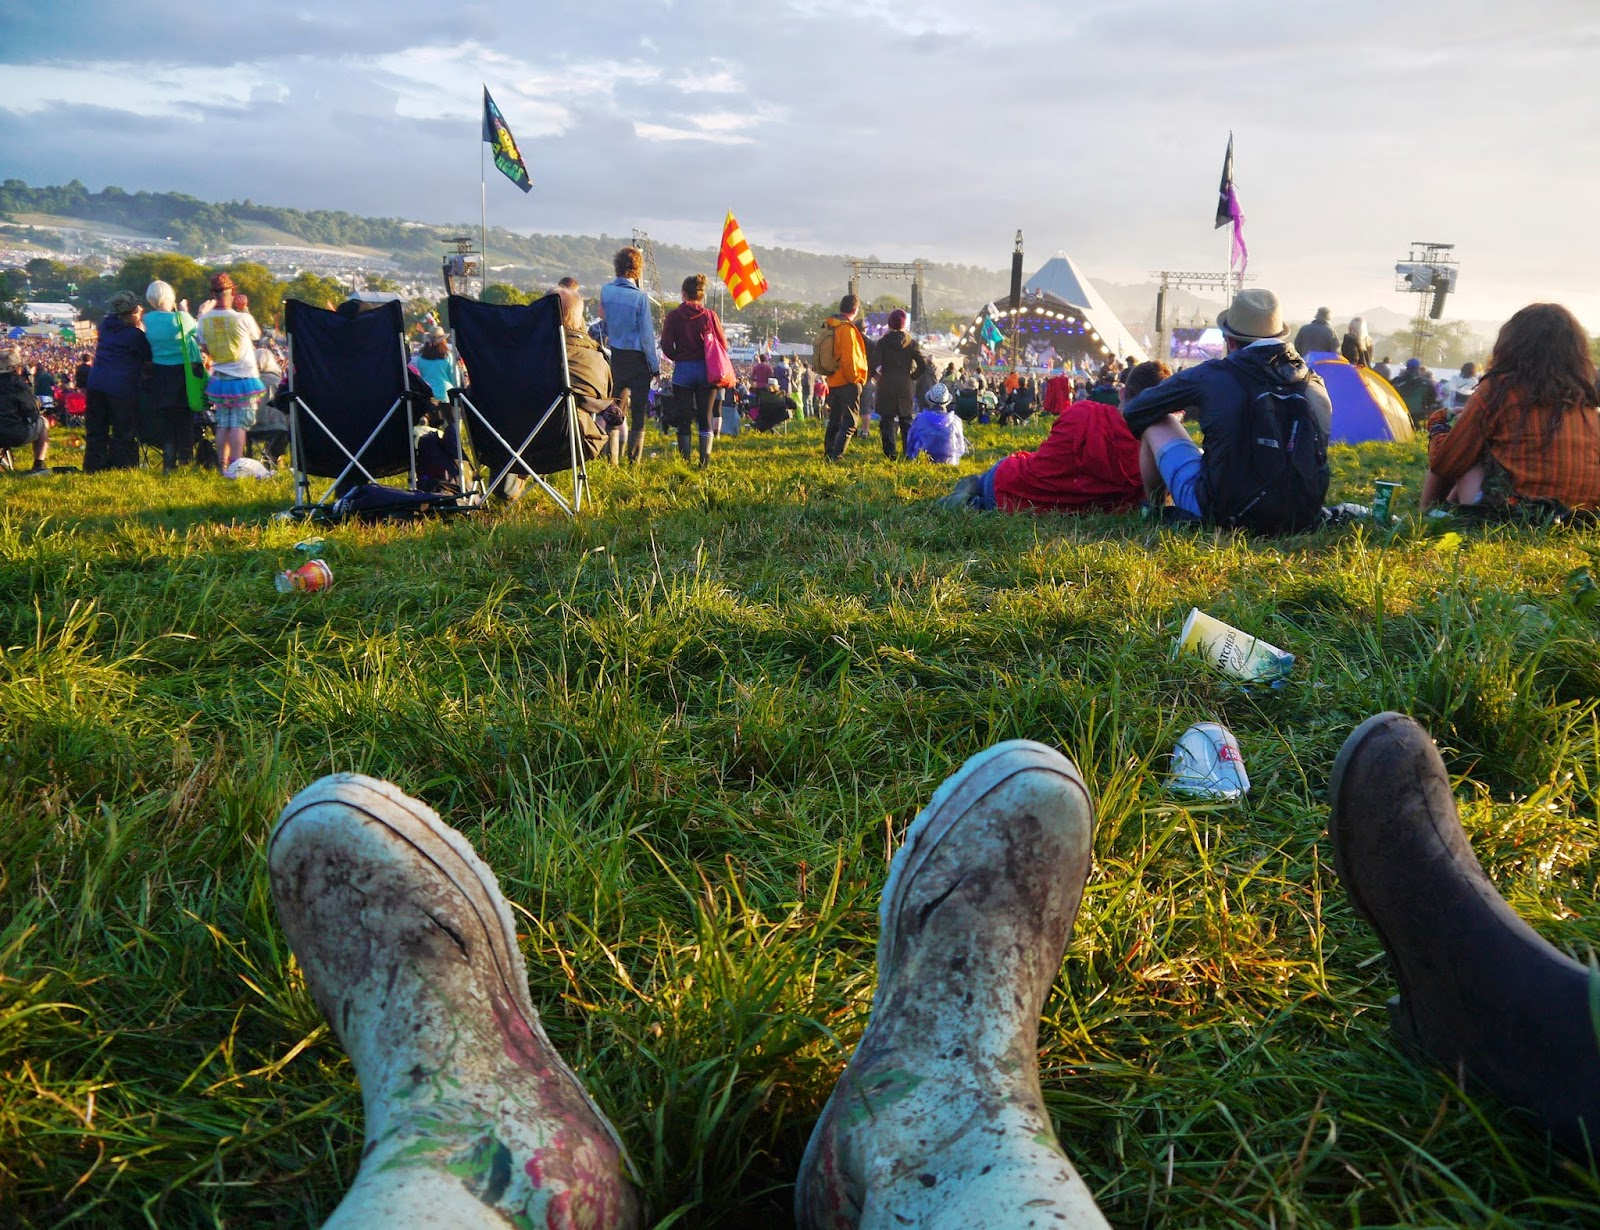 Relaxing at Glastonbury Festival